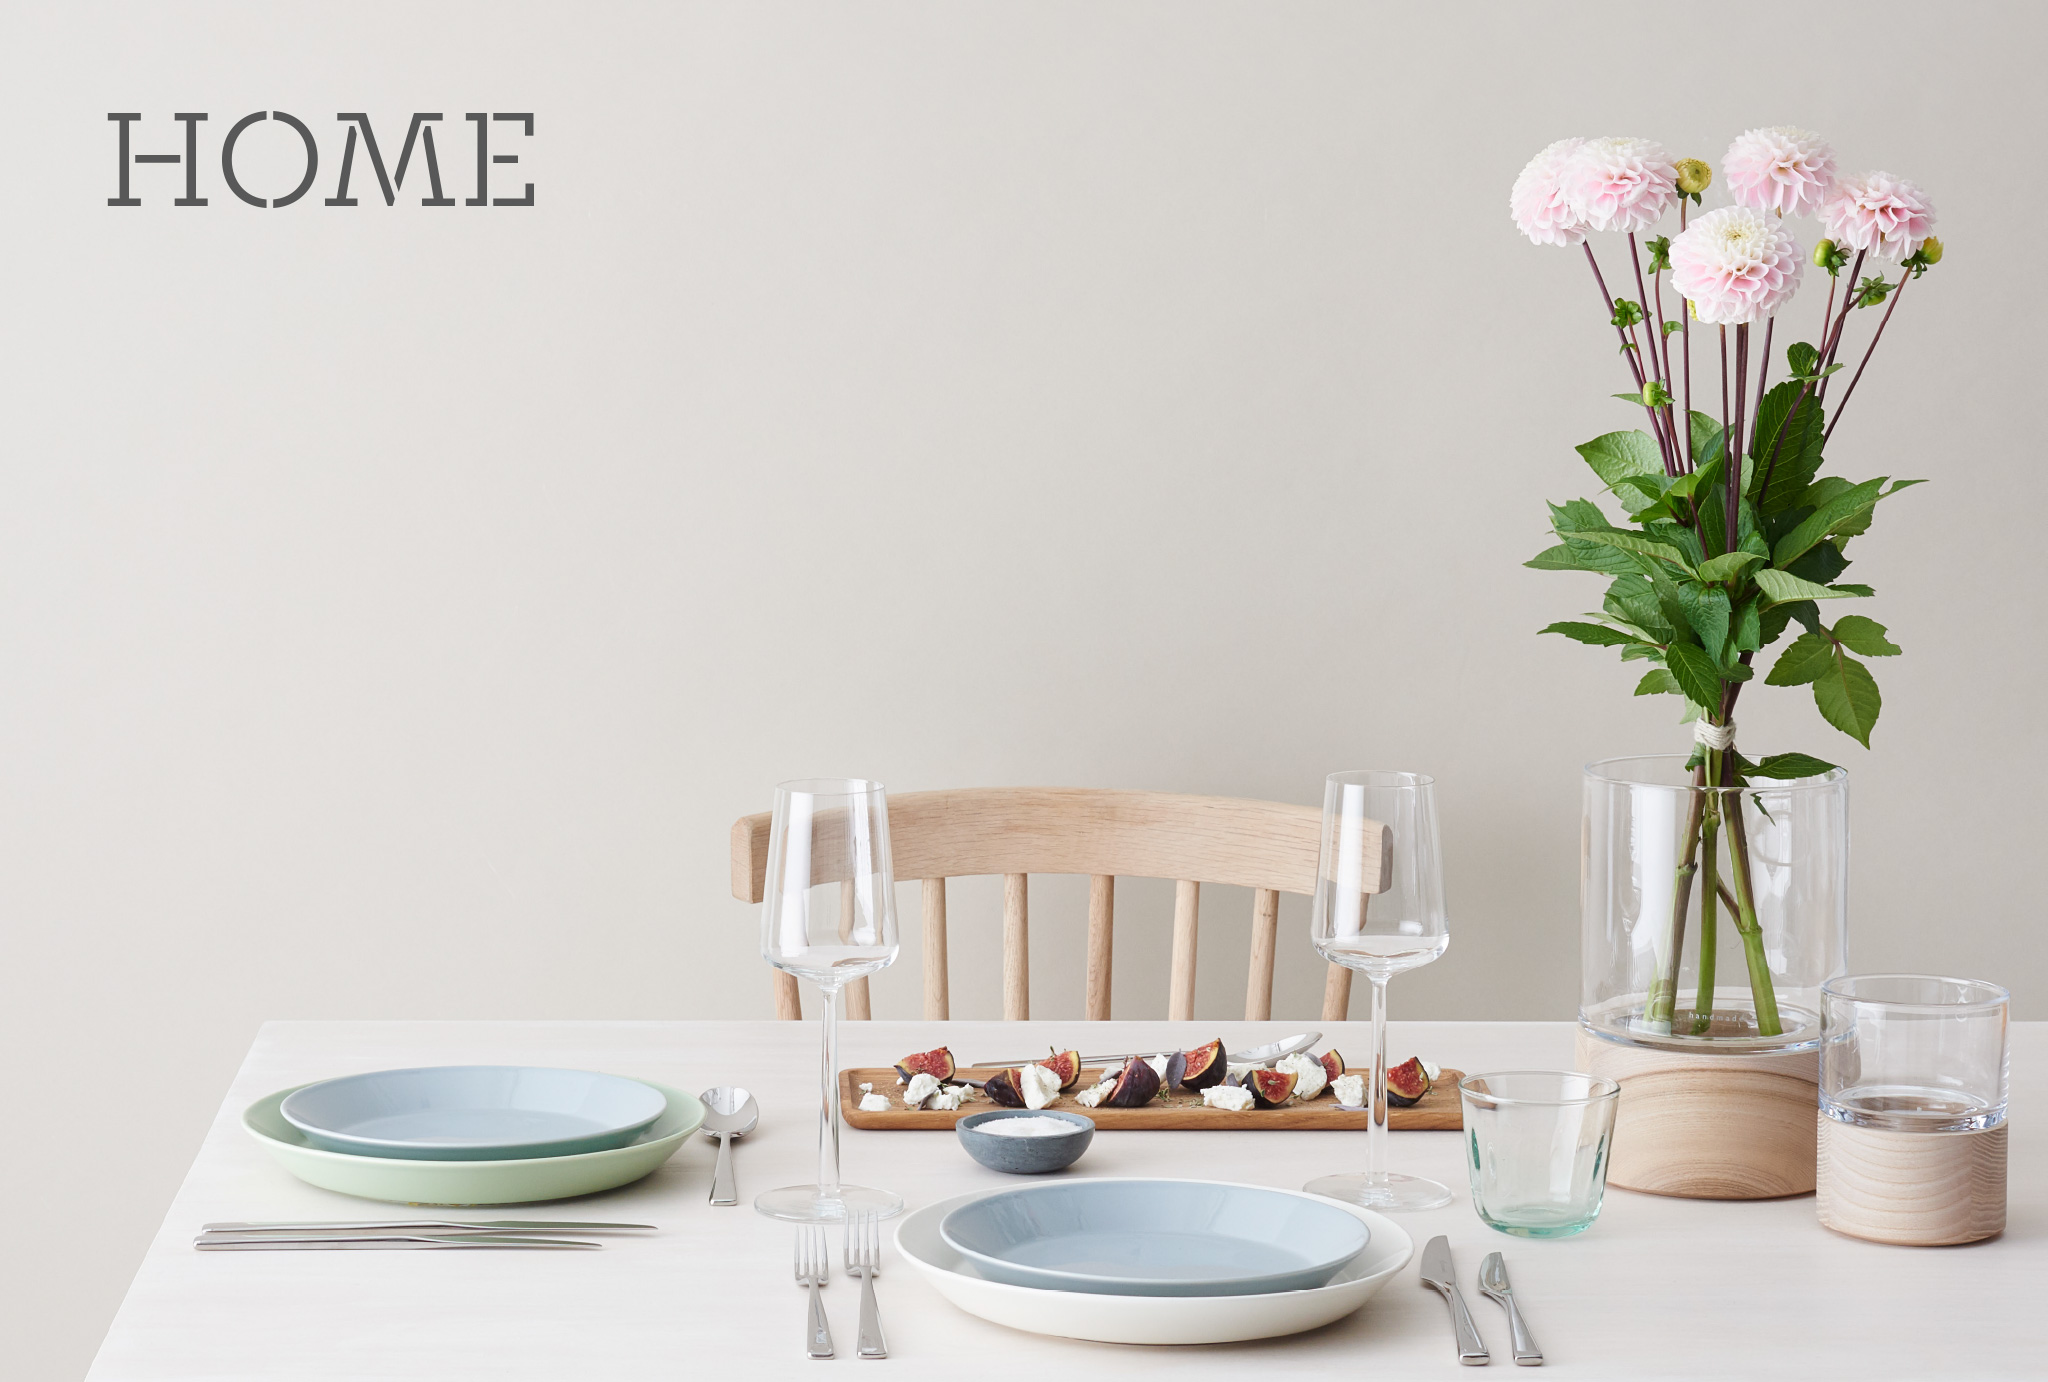 art direction photography for the home sector